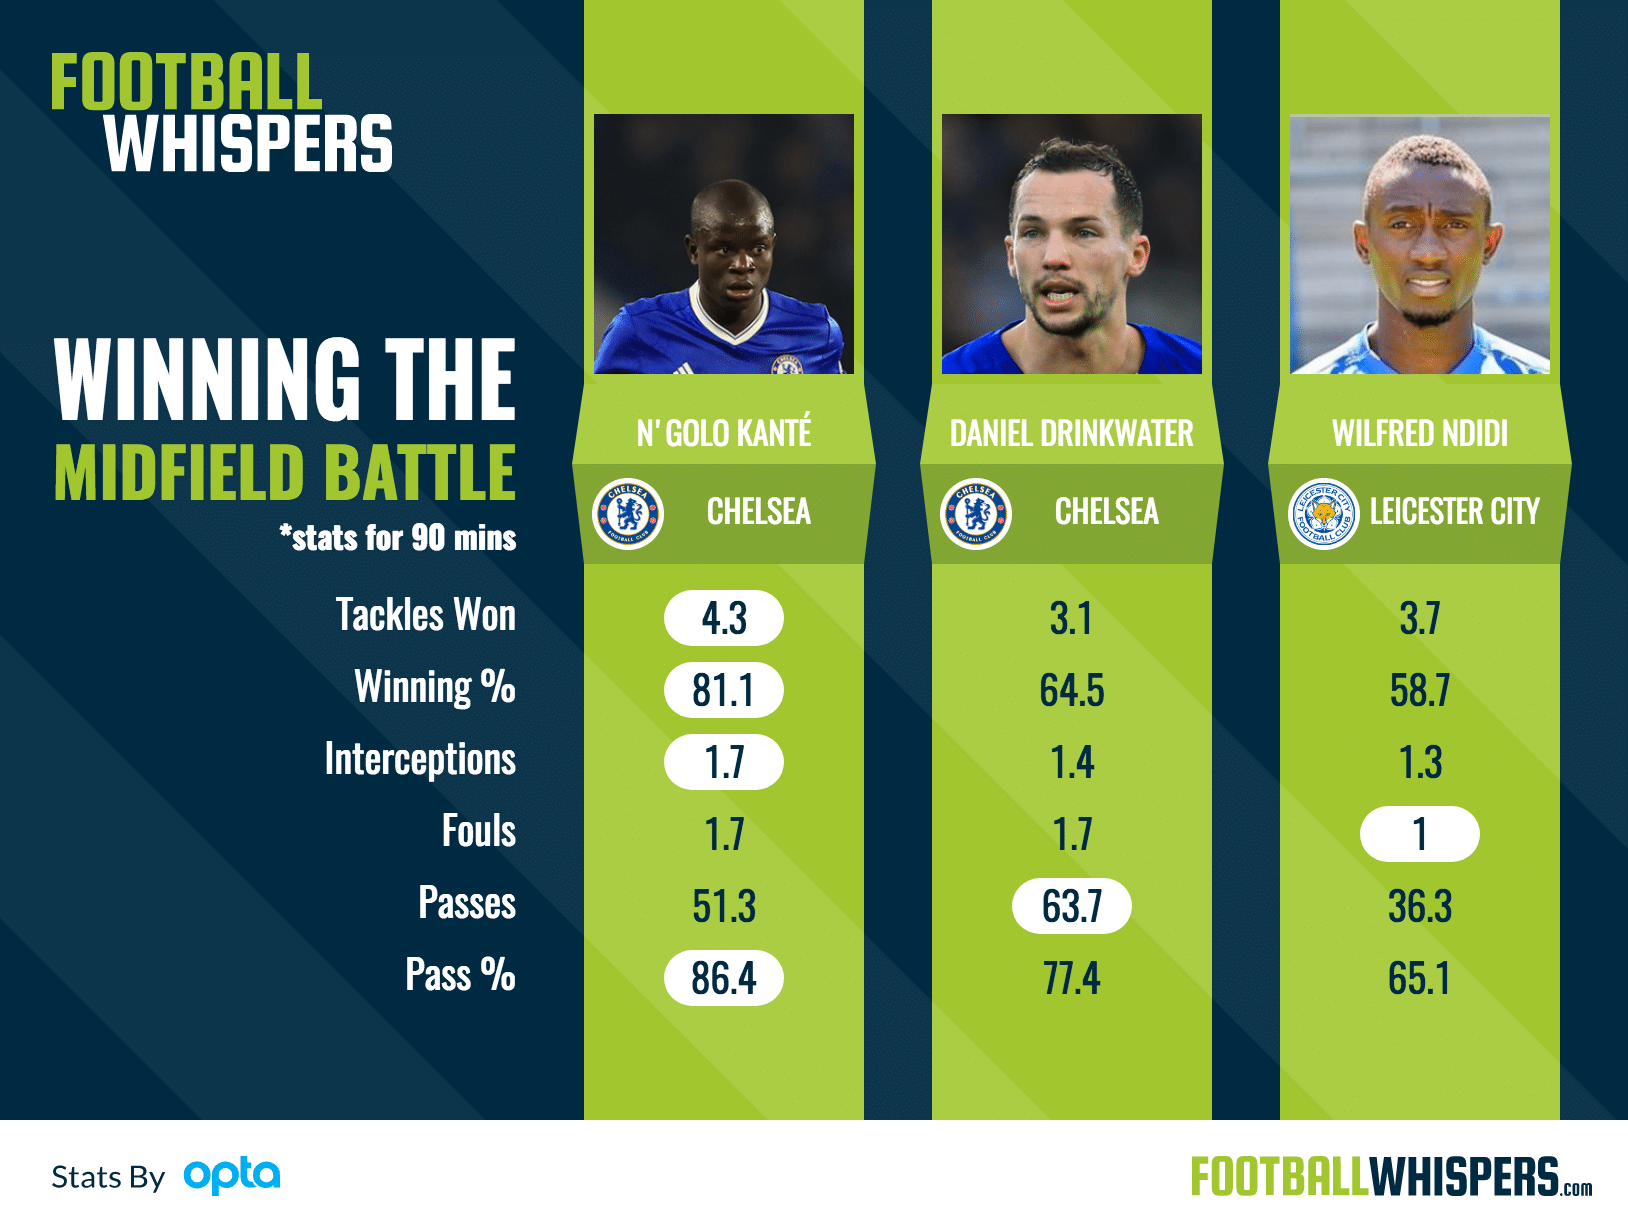 Who wins the midfield battle between Leicester City and Chelsea?